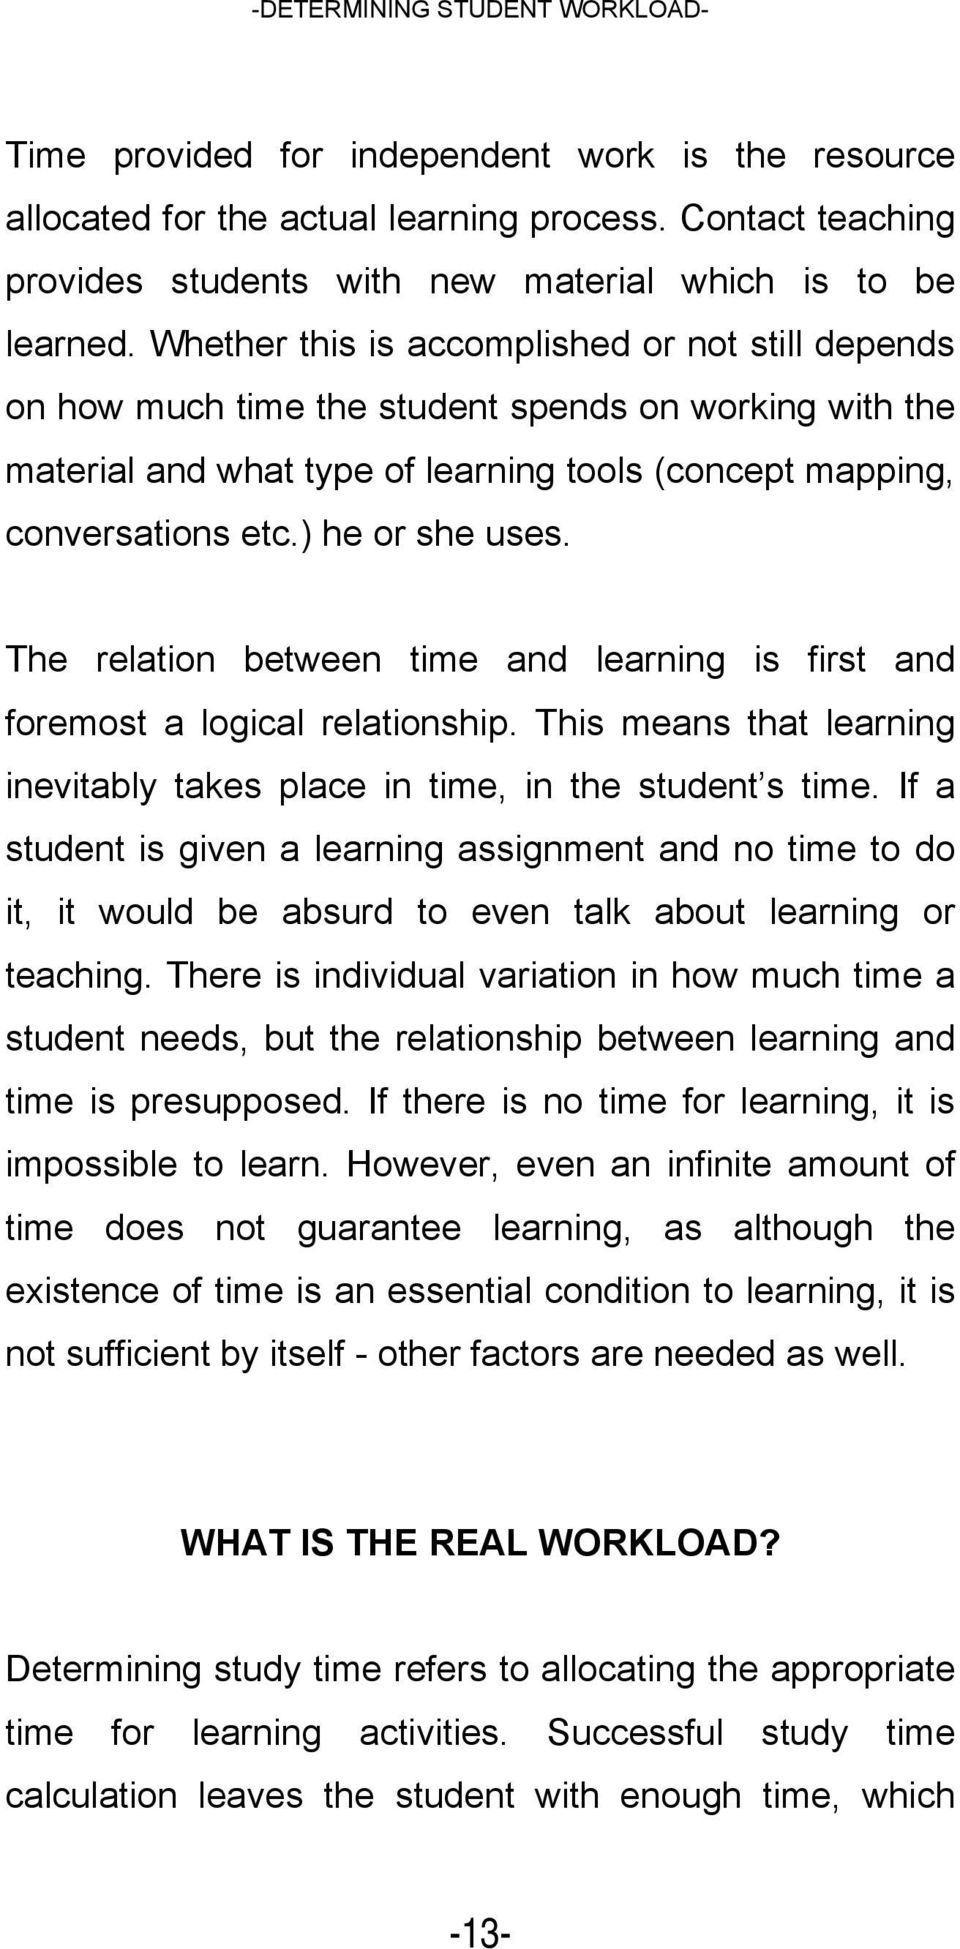 The relation between time and learning is first and foremost a logical relationship. This means that learning inevitably takes place in time, in the student s time.